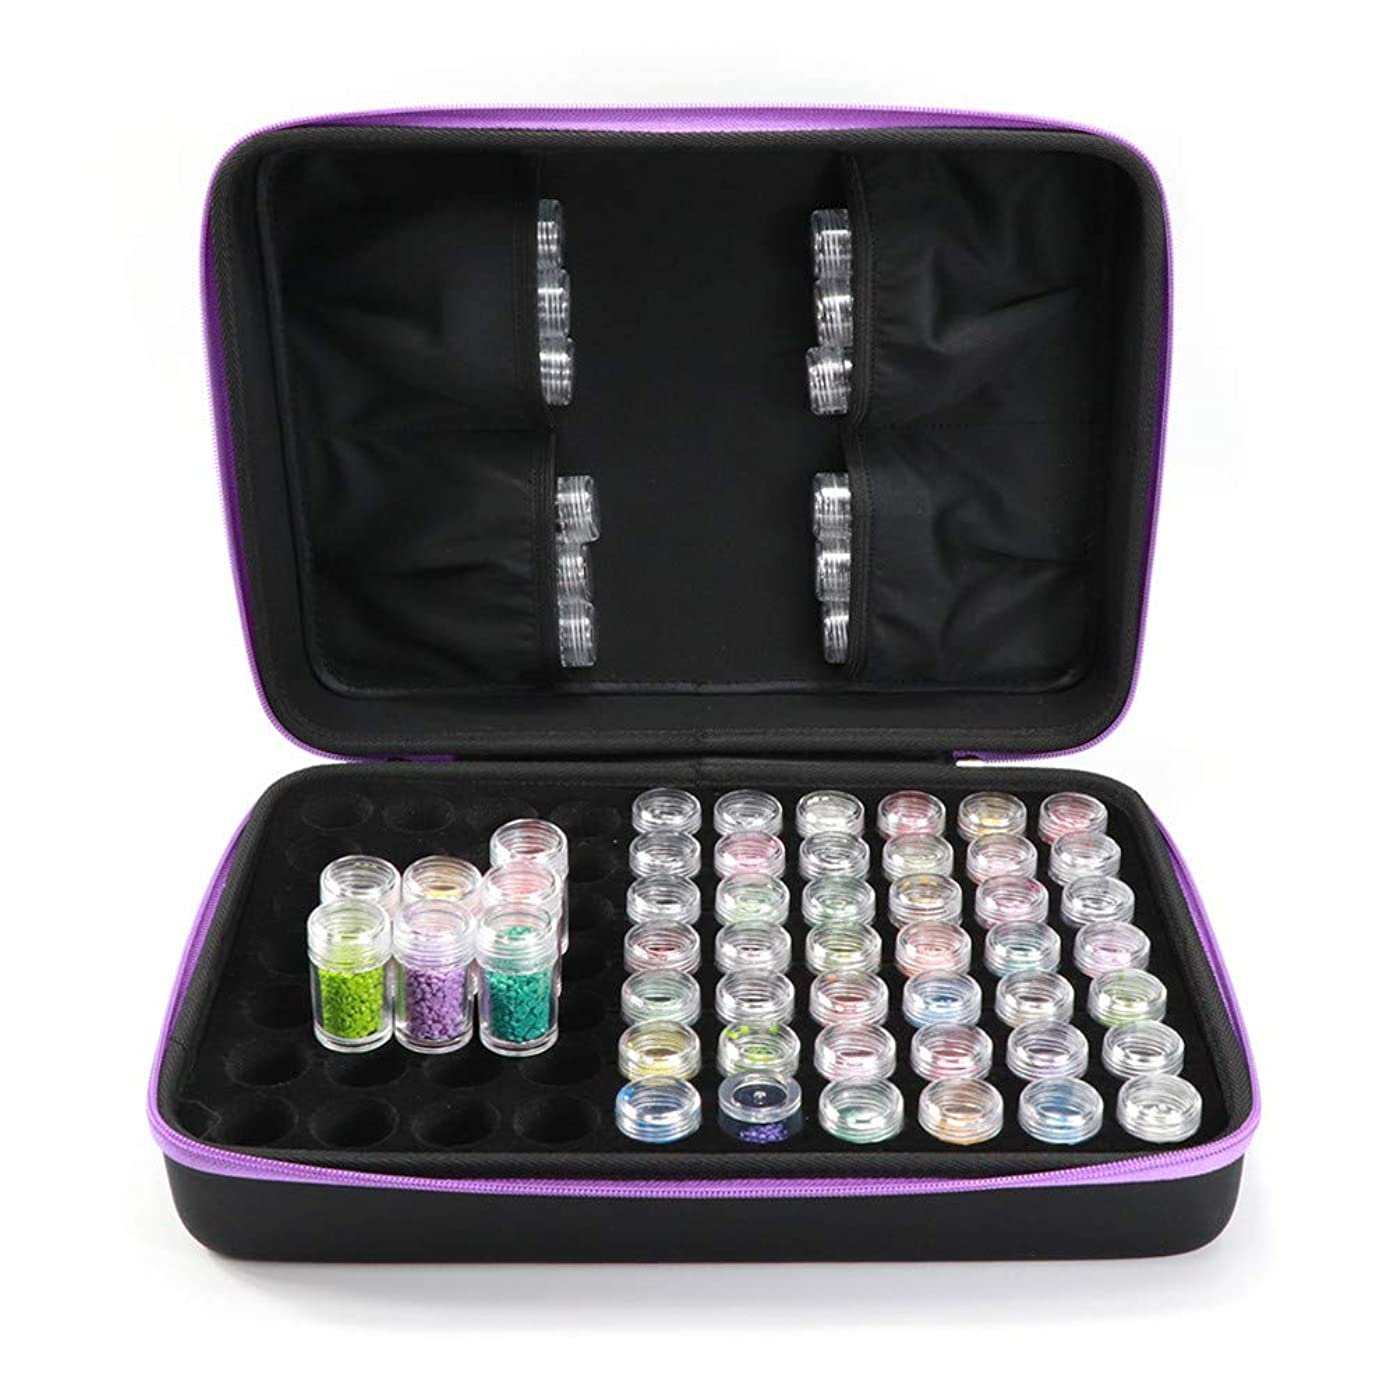 MASiKEN 70 Slots Diamond Painting Storage Case, 5D Diamond Embroidery Box Accessories 70 Grids High Capacity Shockproof and Durable Containers Case, Include 70pcs of Empty Bottles (Purple)